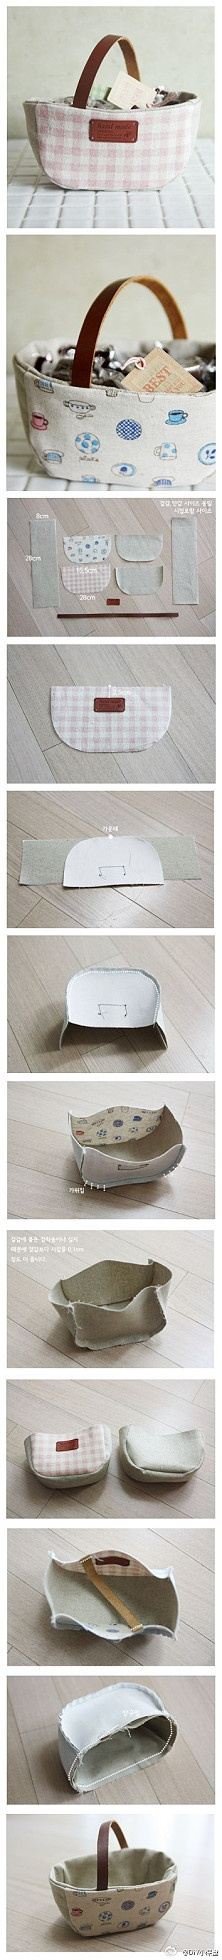 Make your own tote basket. How could would this be with used clothing cloth and a belt as a strap?